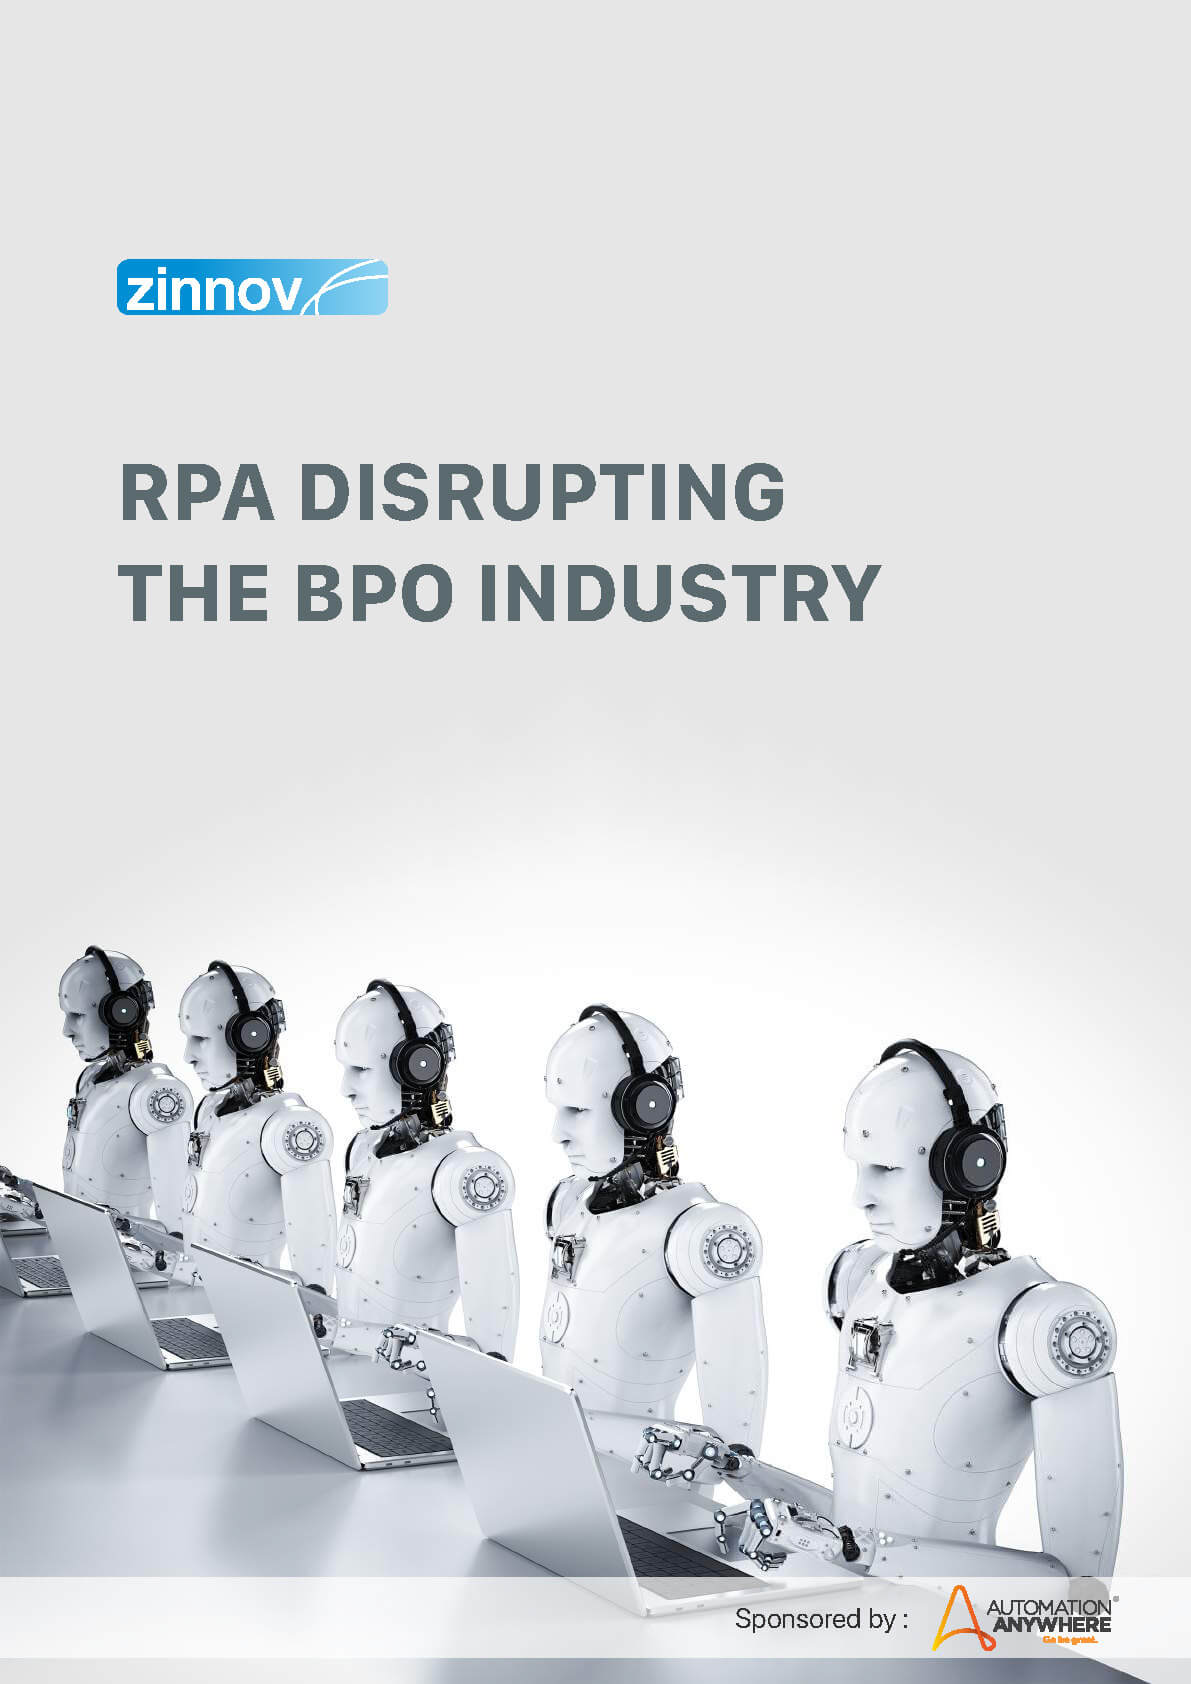 RPA Disrupting The BPO Industry